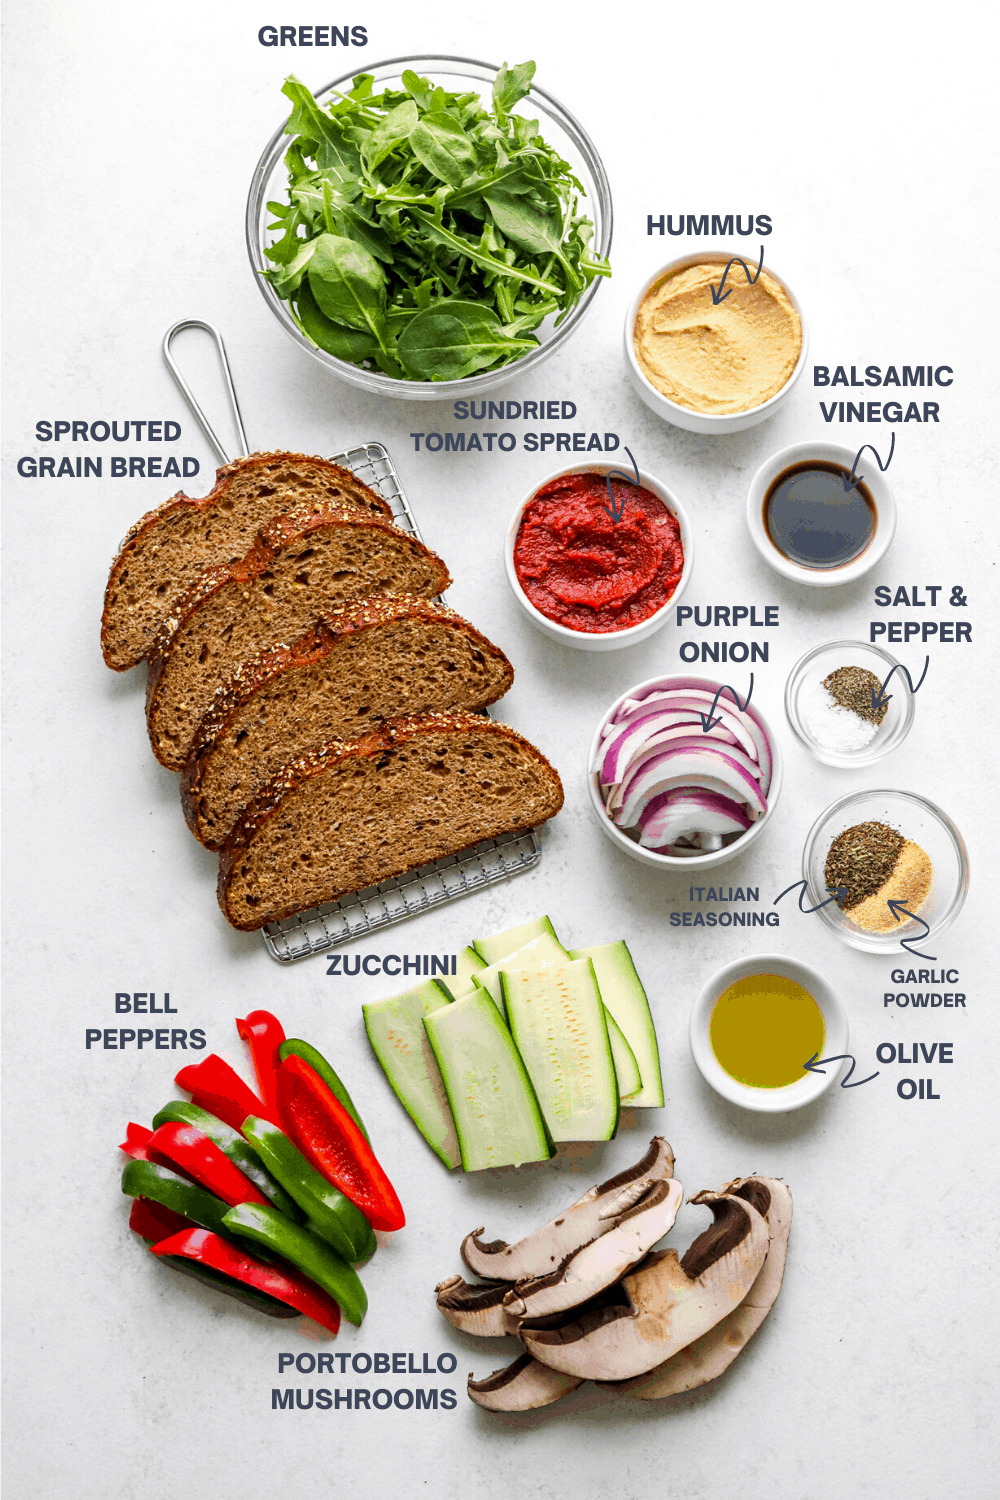 Whole grain bread sliced, sliced zucchini, peppers, onions and mushrooms on a white surface with olive oil and spices next to it.